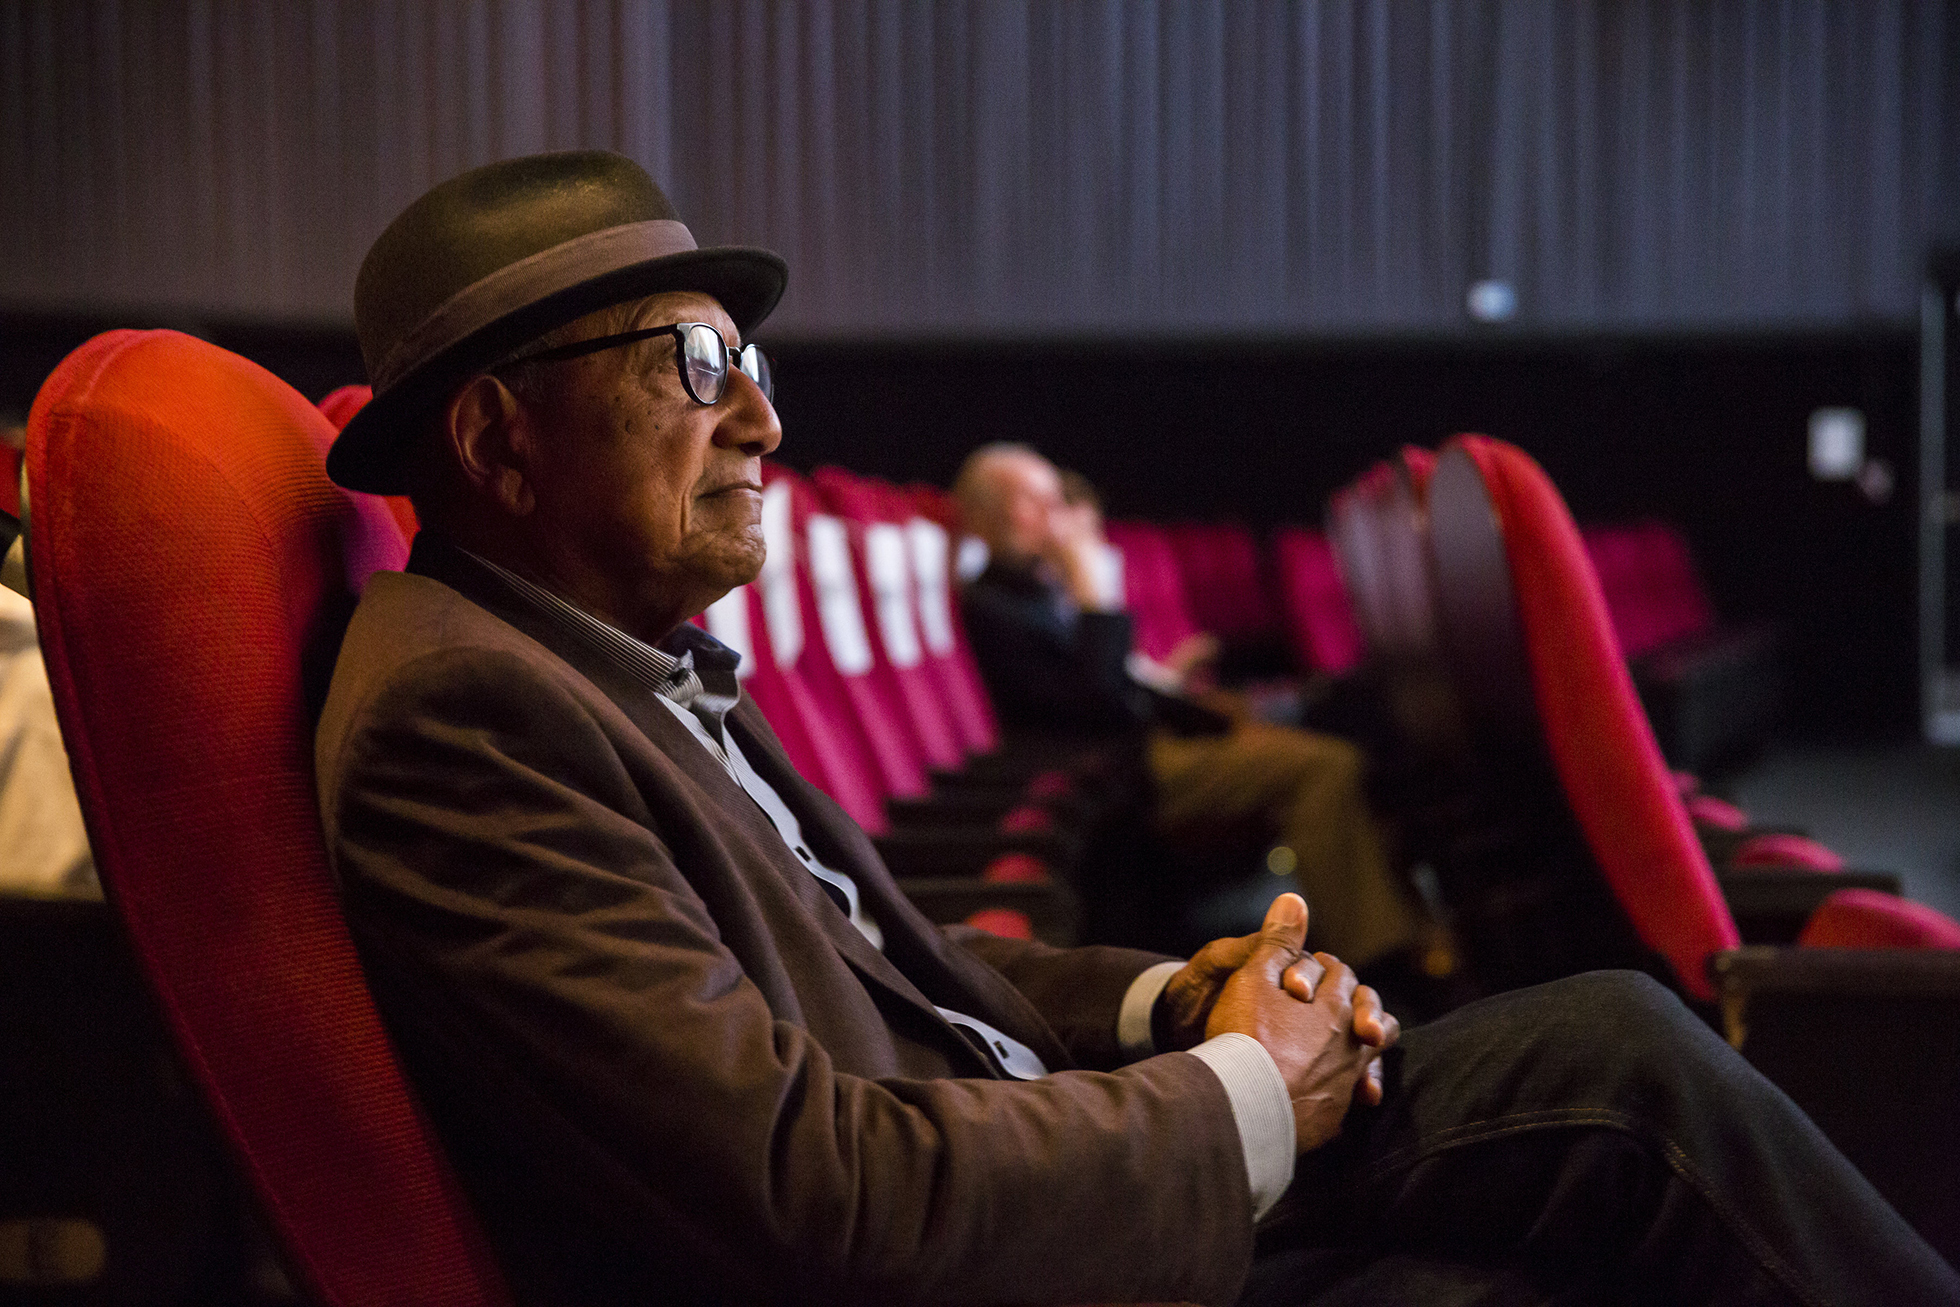 man in shit with hat and glasses i the cinema